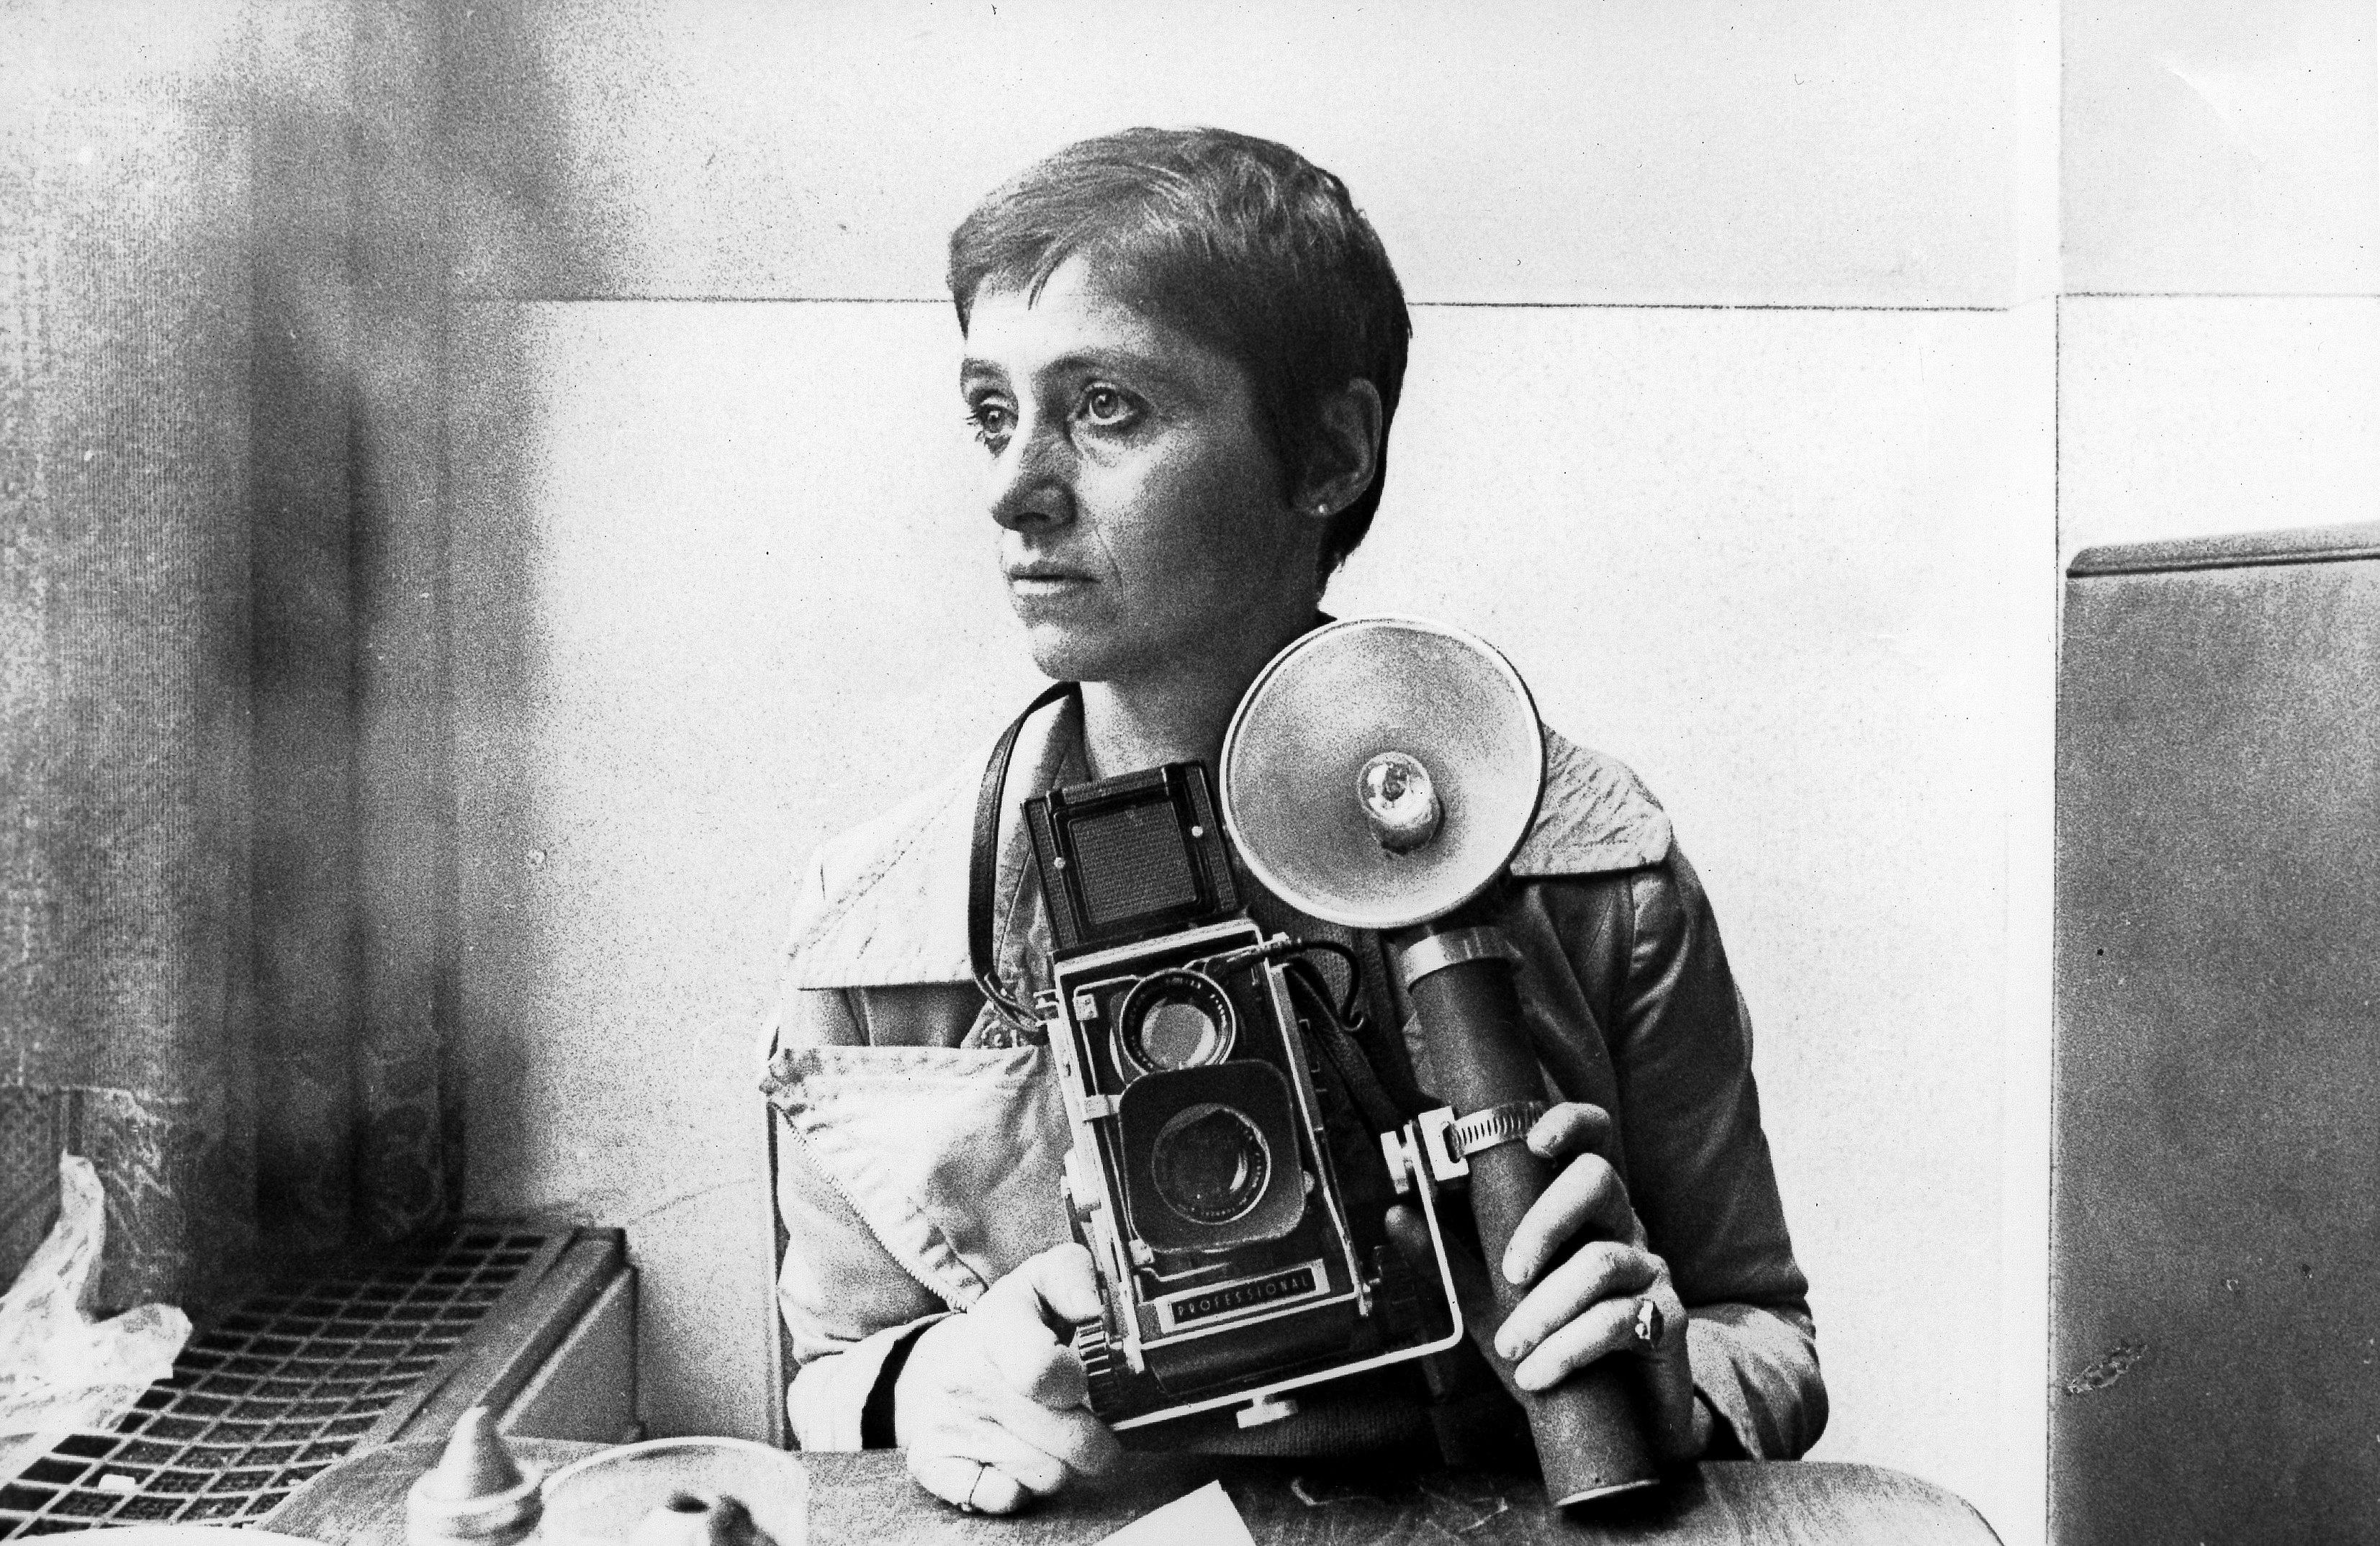 Diane Arbus: Describing the Loneliness that Shames Us